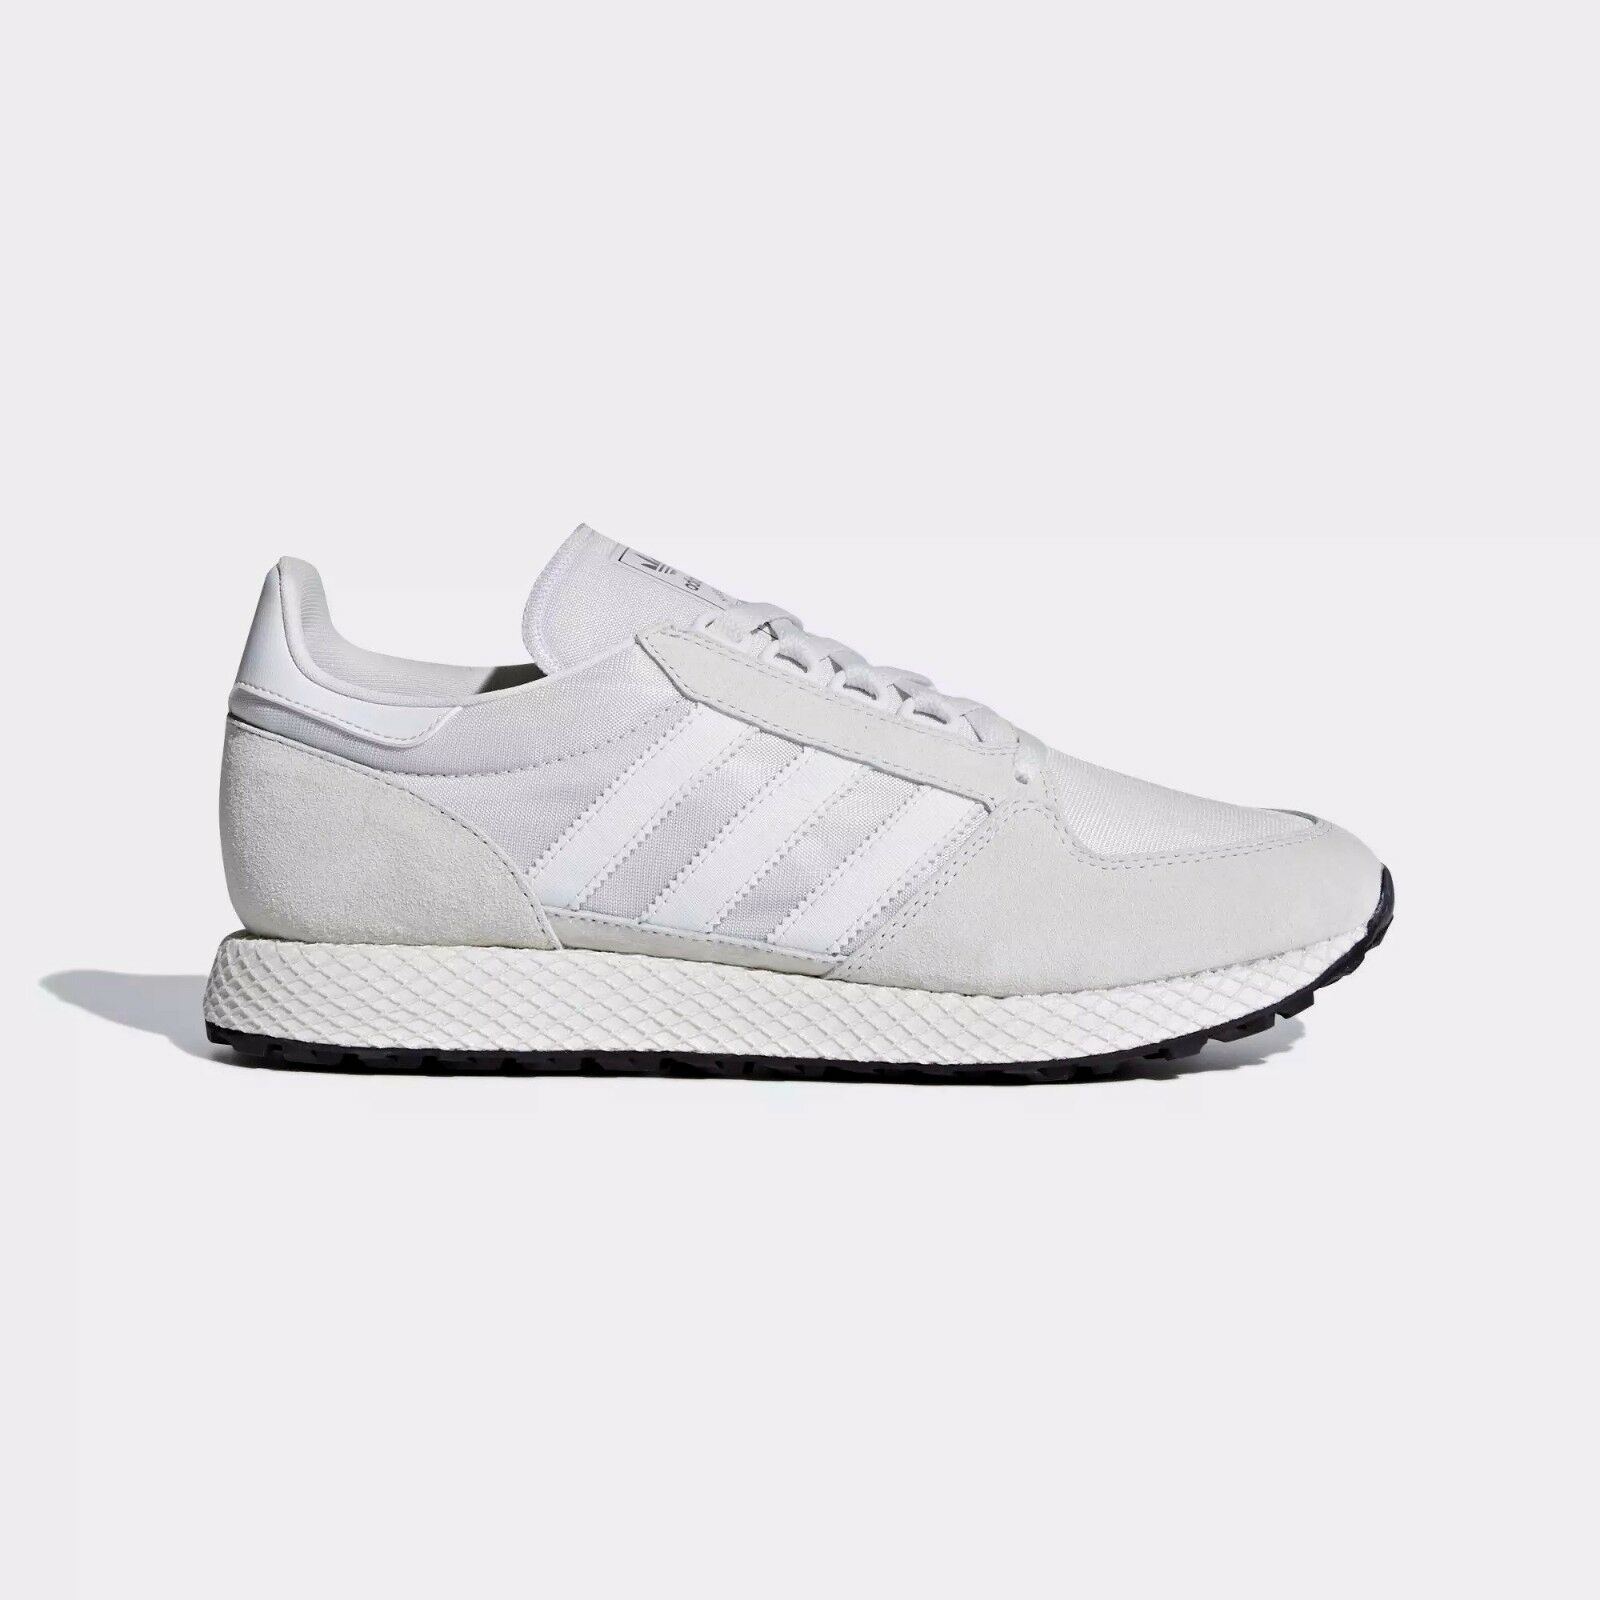 New Men's Shoes adidas Originals Forest Grove Shoes Men's Running Sneakers Retro Style 4deb2b